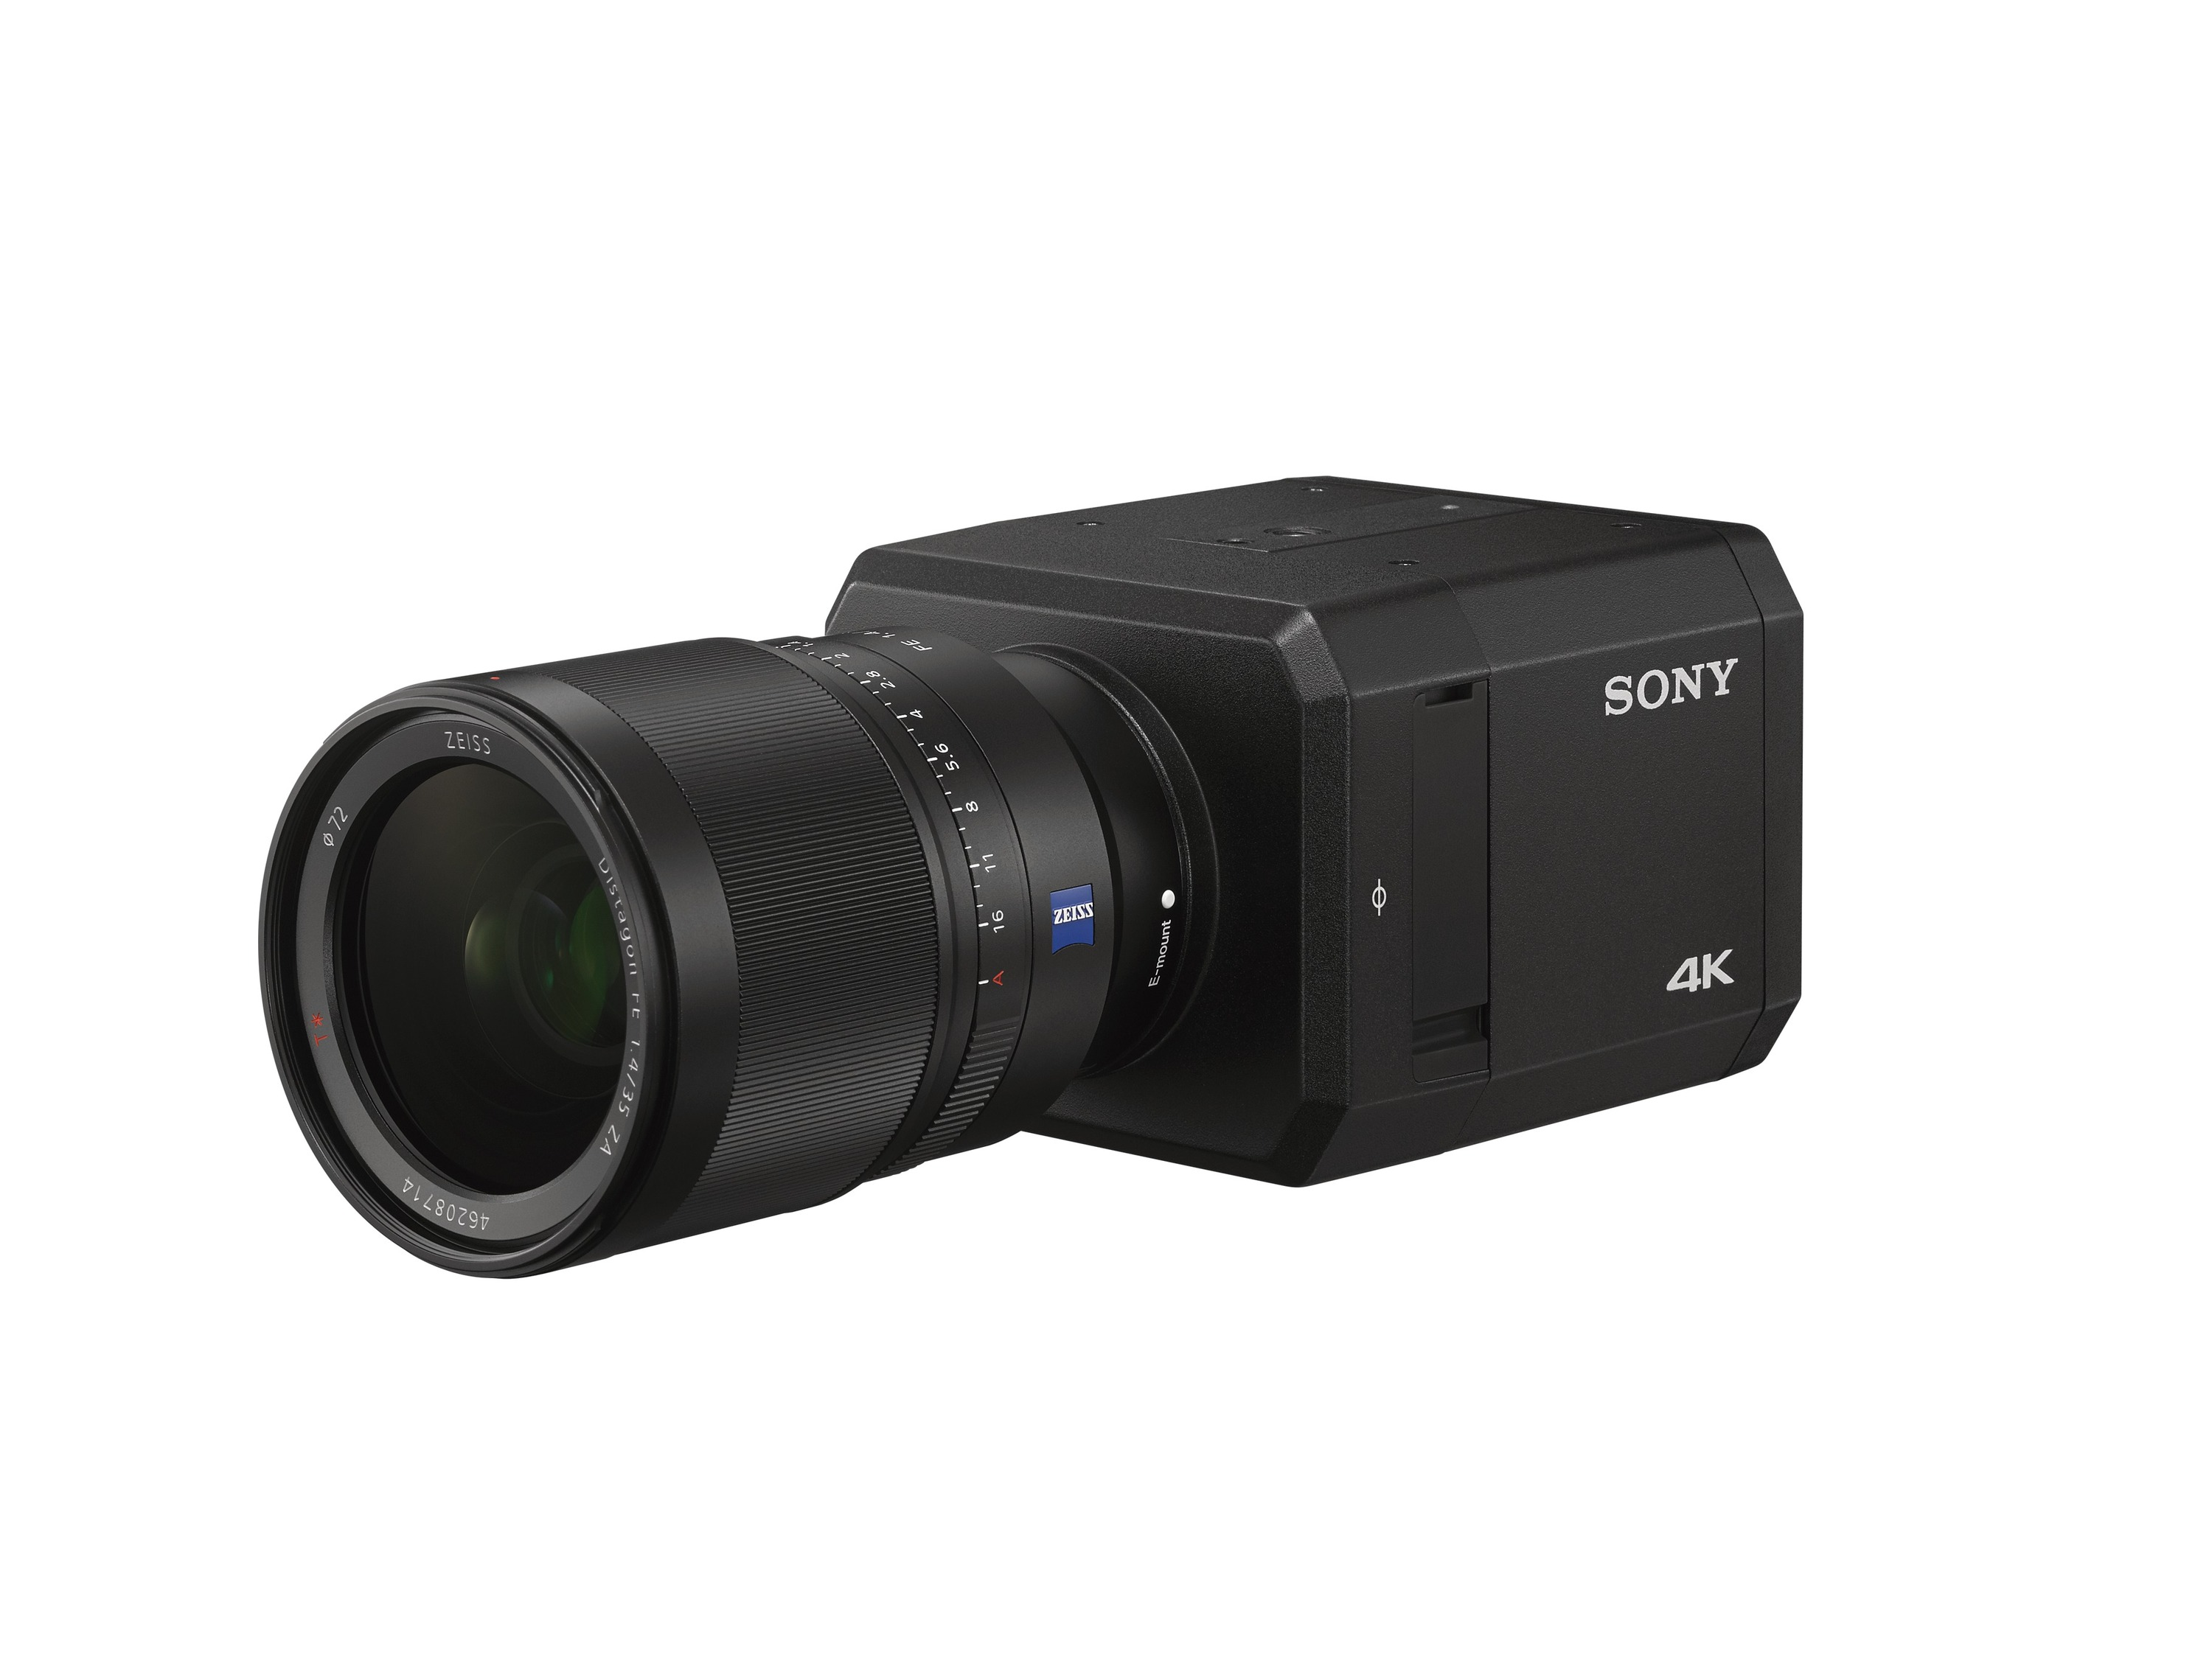 SNC-VB770 Ultra Low Light 4K Box camera